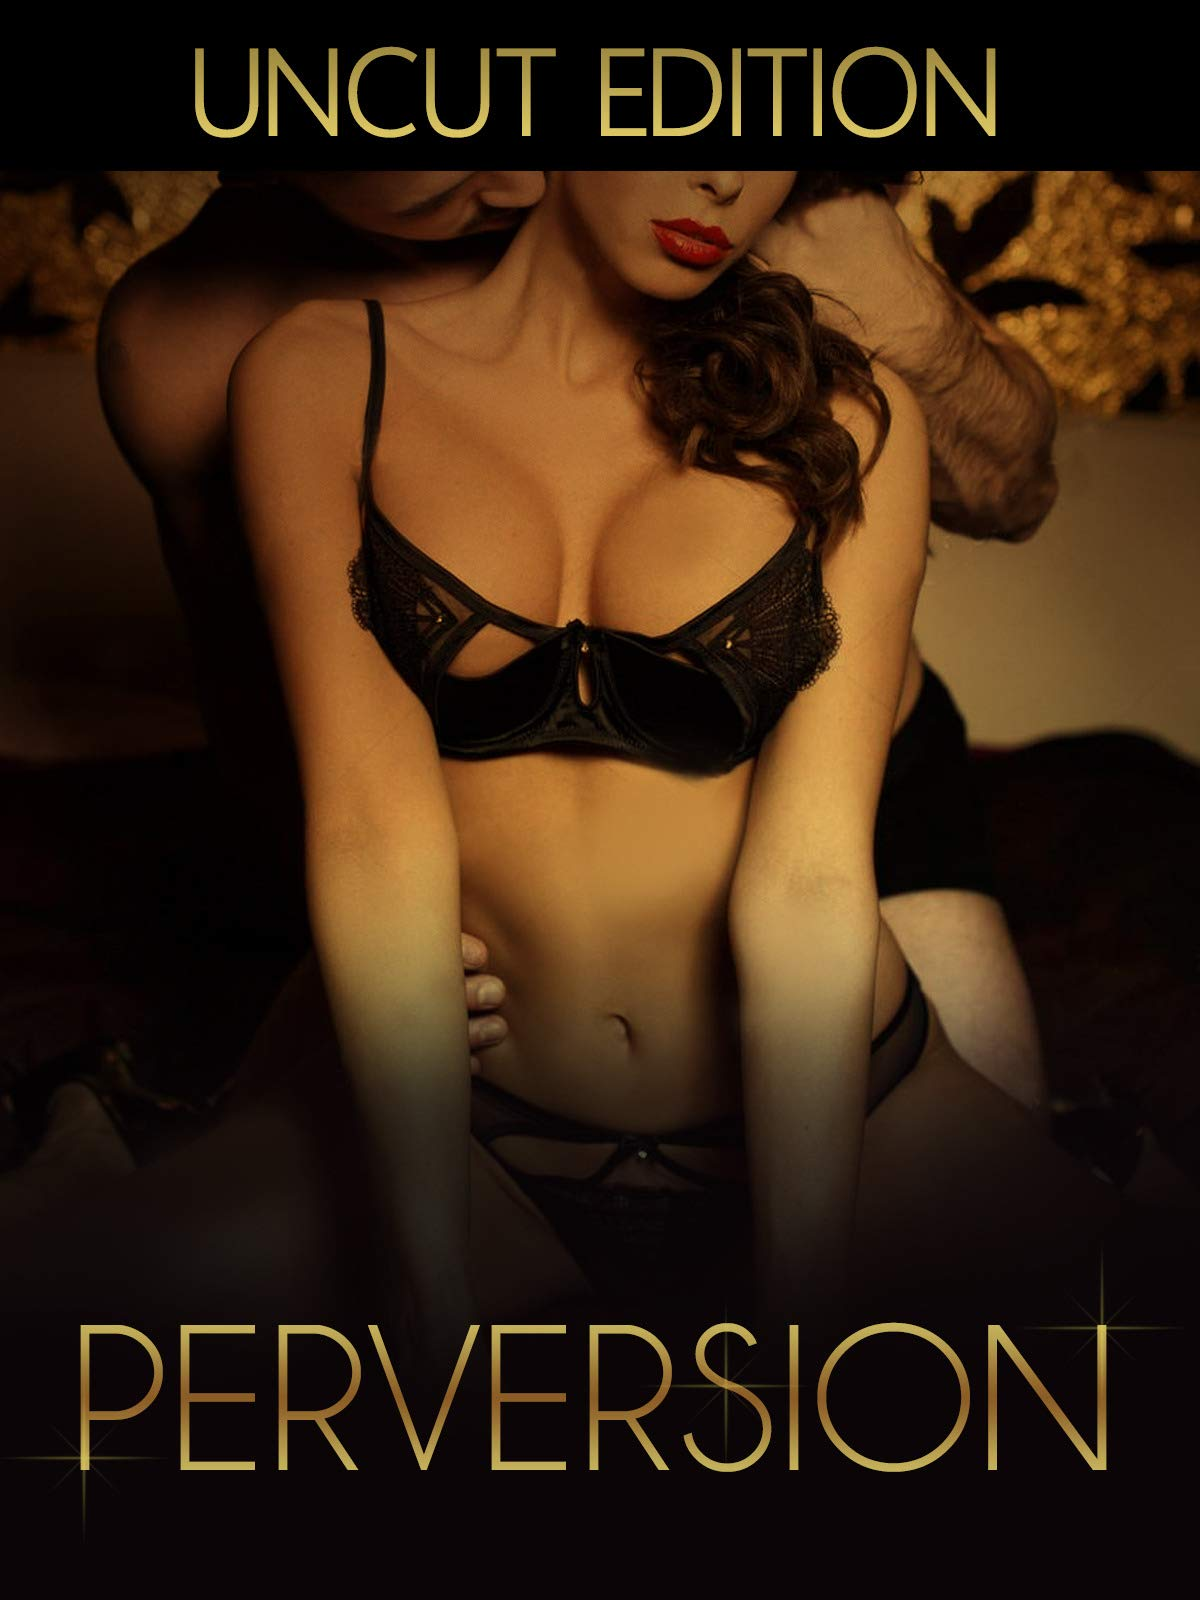 Perversion (Uncut edition) on Amazon Prime Video UK